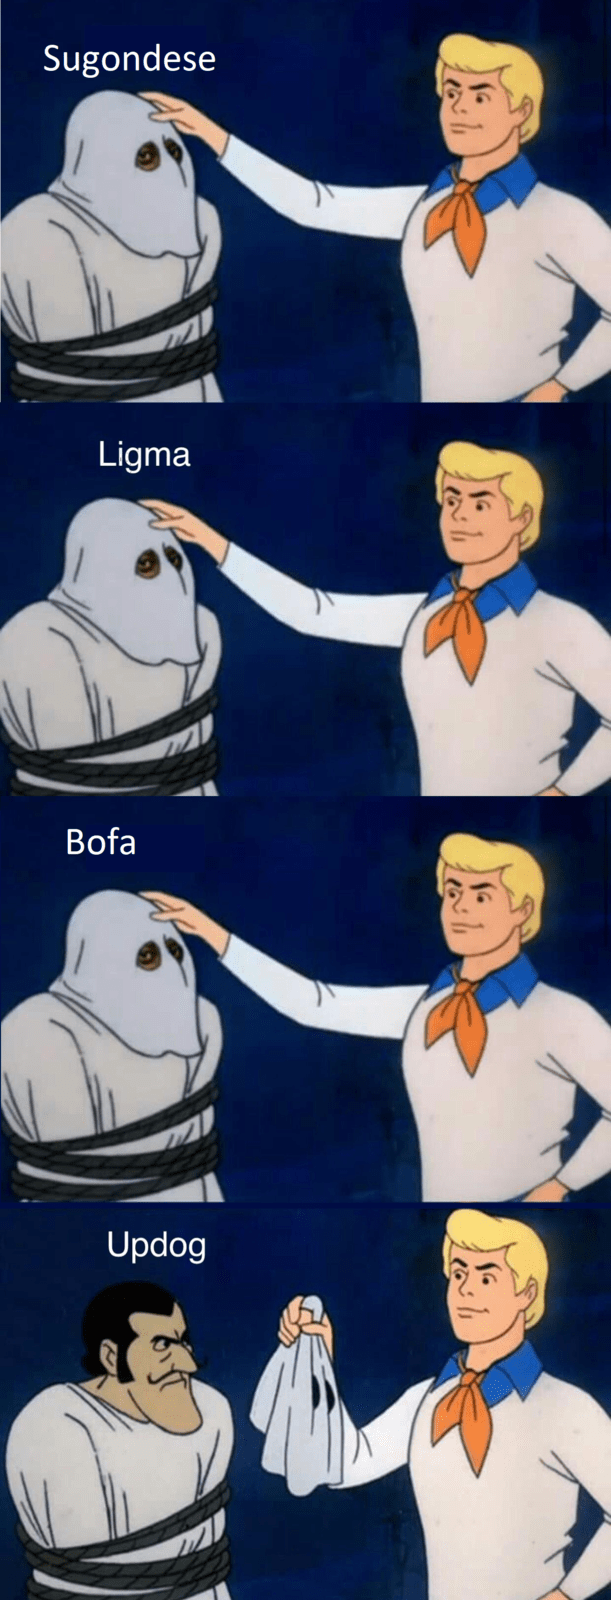 meme of Scooby Doo OK, gang lets find out who, and ligma, bofa, sugondese are all updog